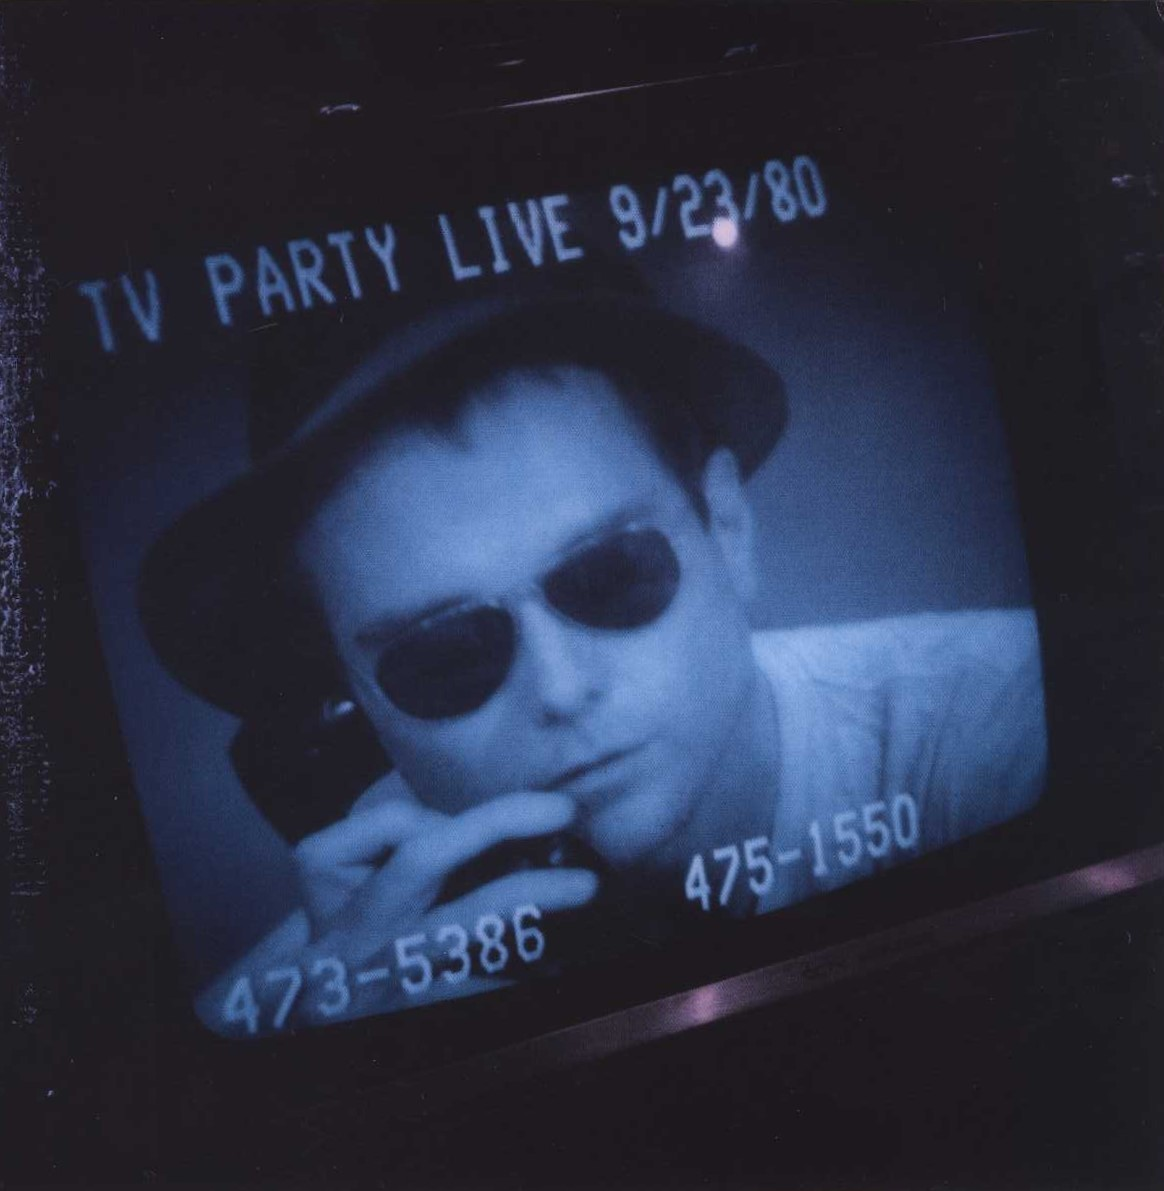 glen obrien tv party photography maripol 1980